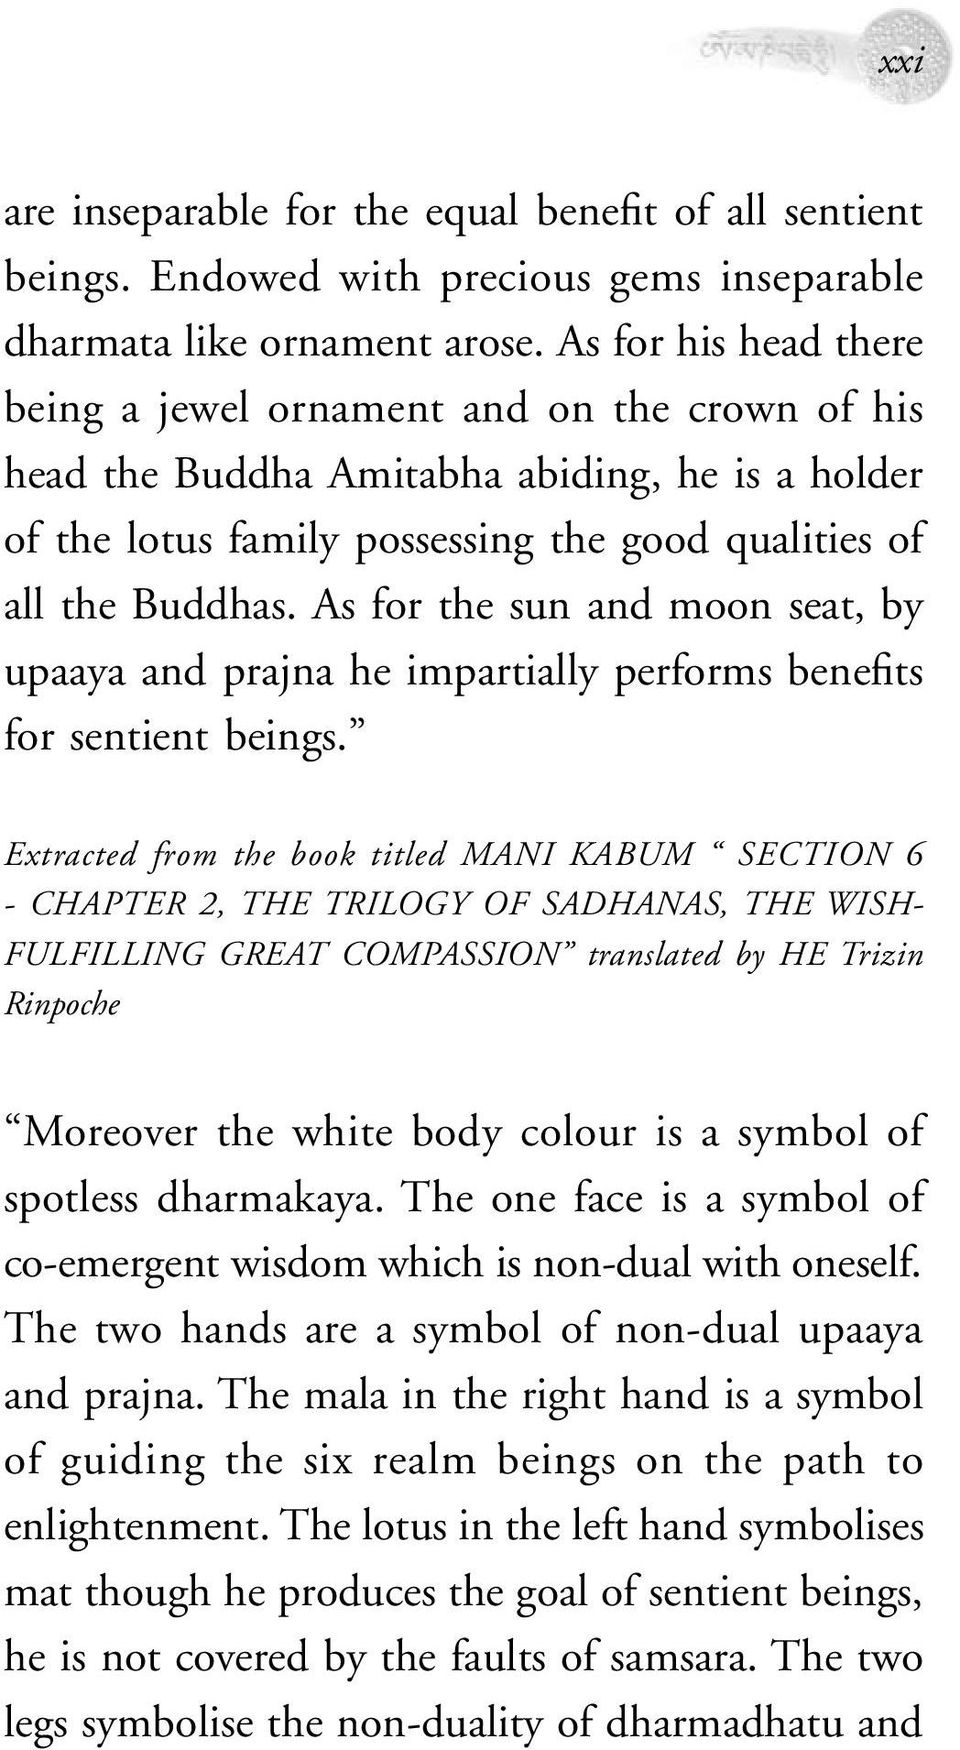 As for the sun and moon seat, by upaaya and prajna he impartially performs benefits for sentient beings.